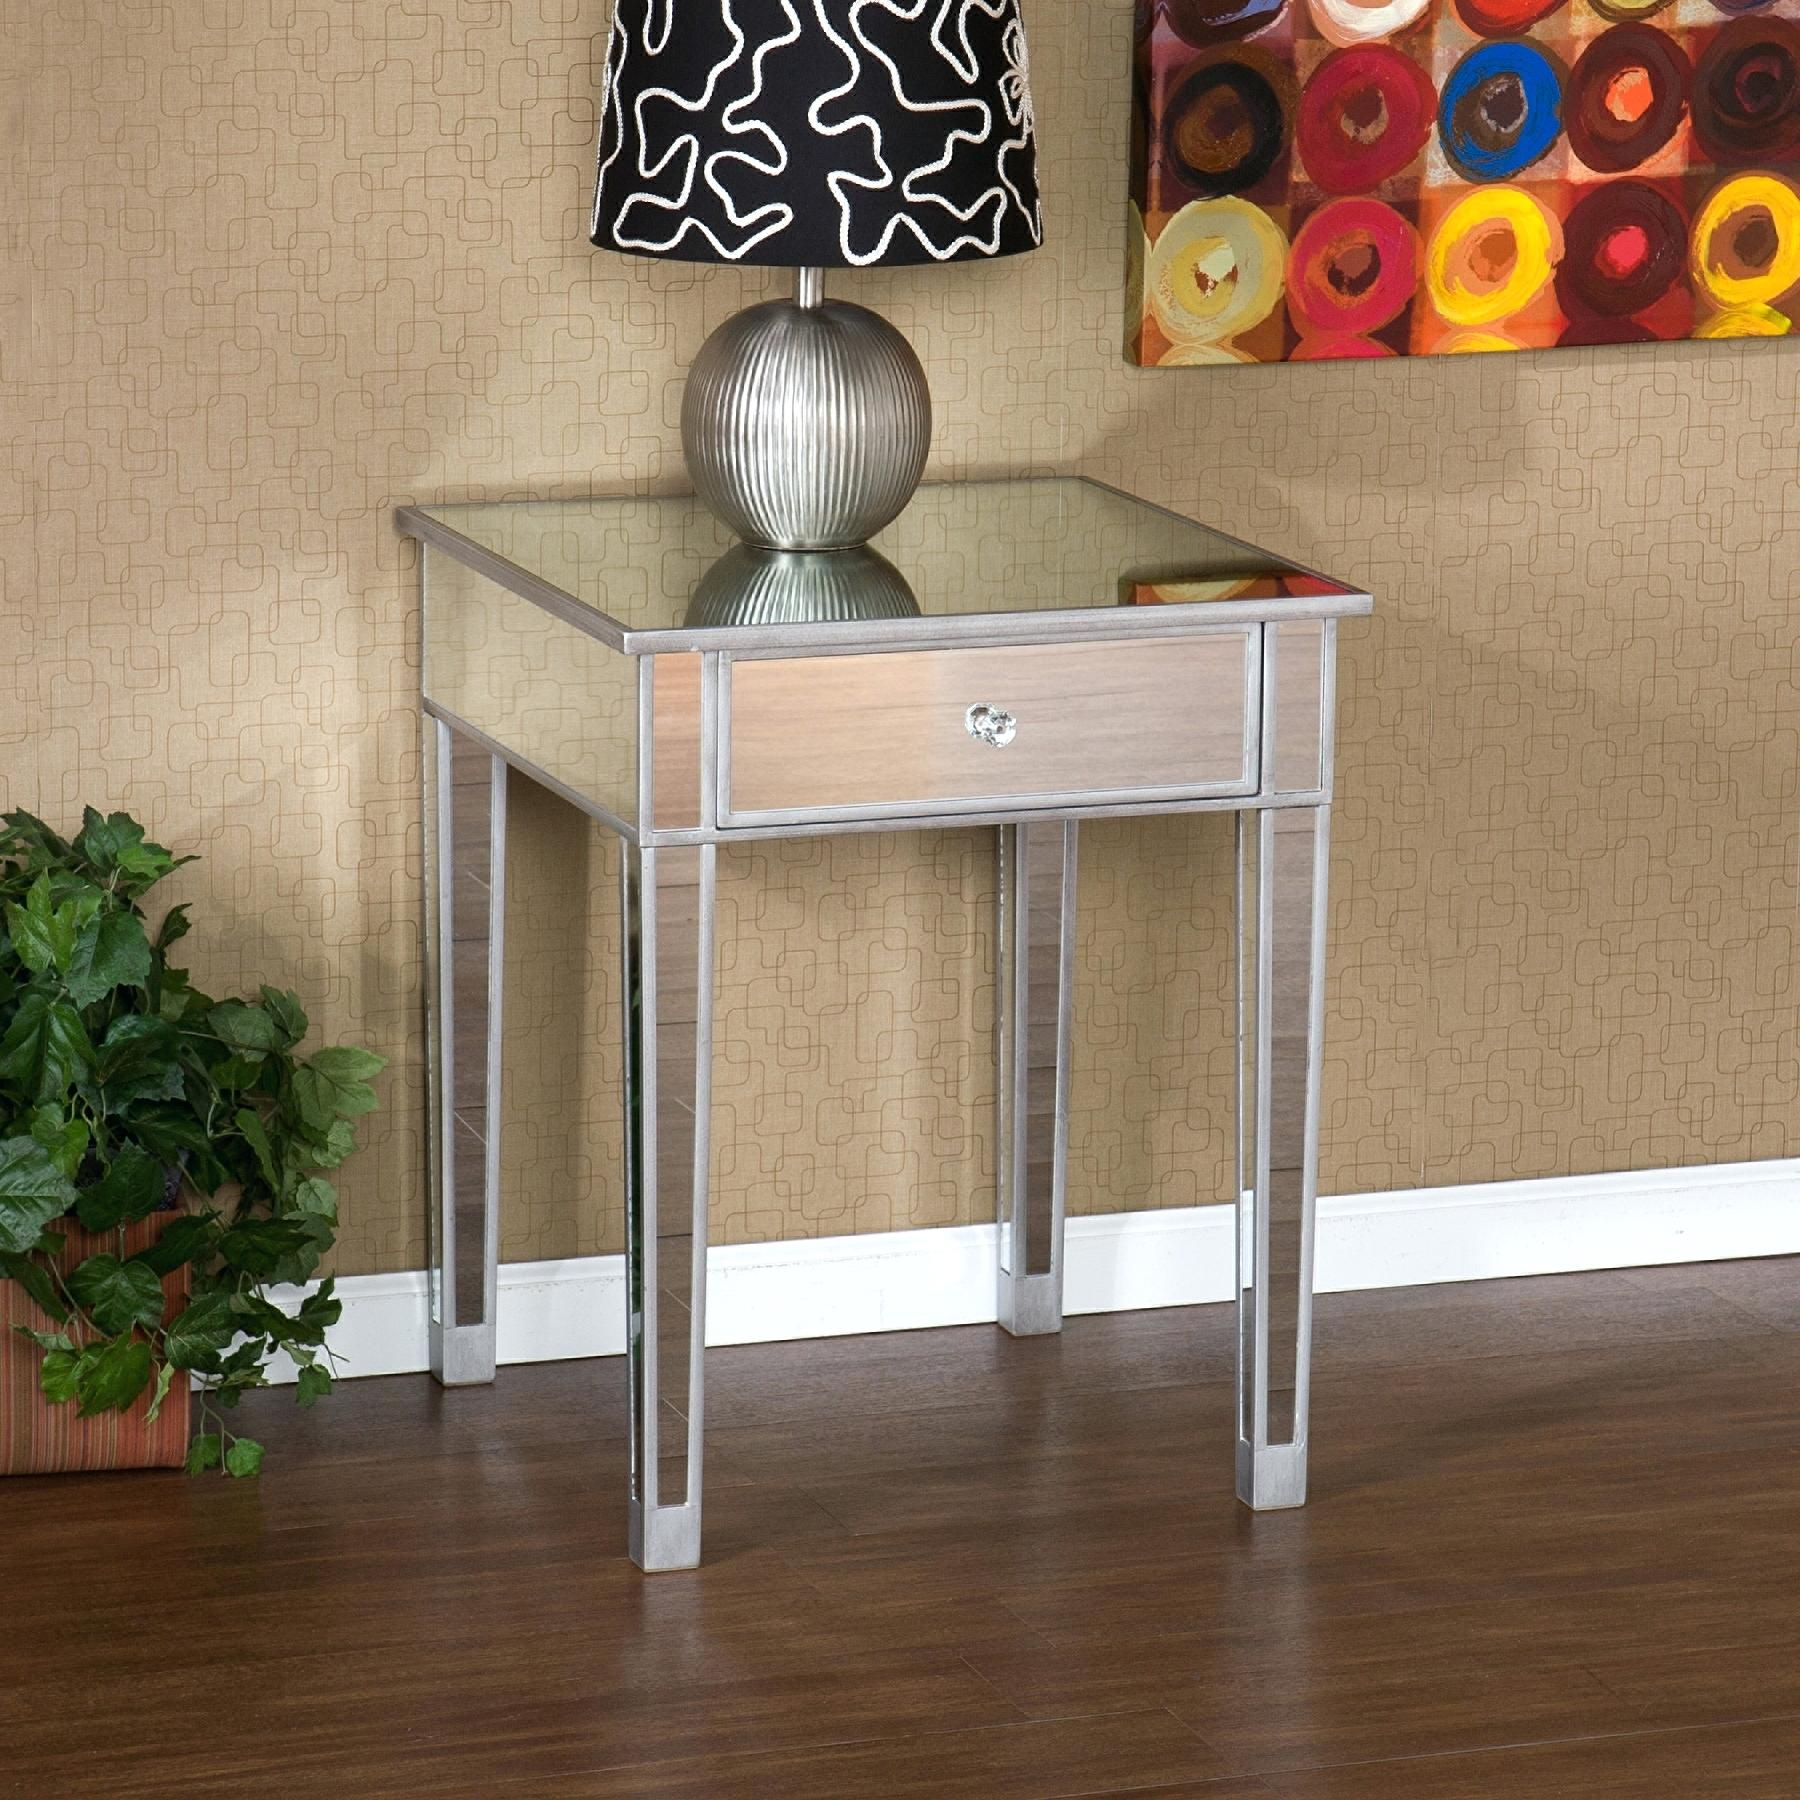 living room accent table mix and match tables for snack with glass top sauder storage cabinet danish modern side metal patio coffee semi circle large dining mid century dresser